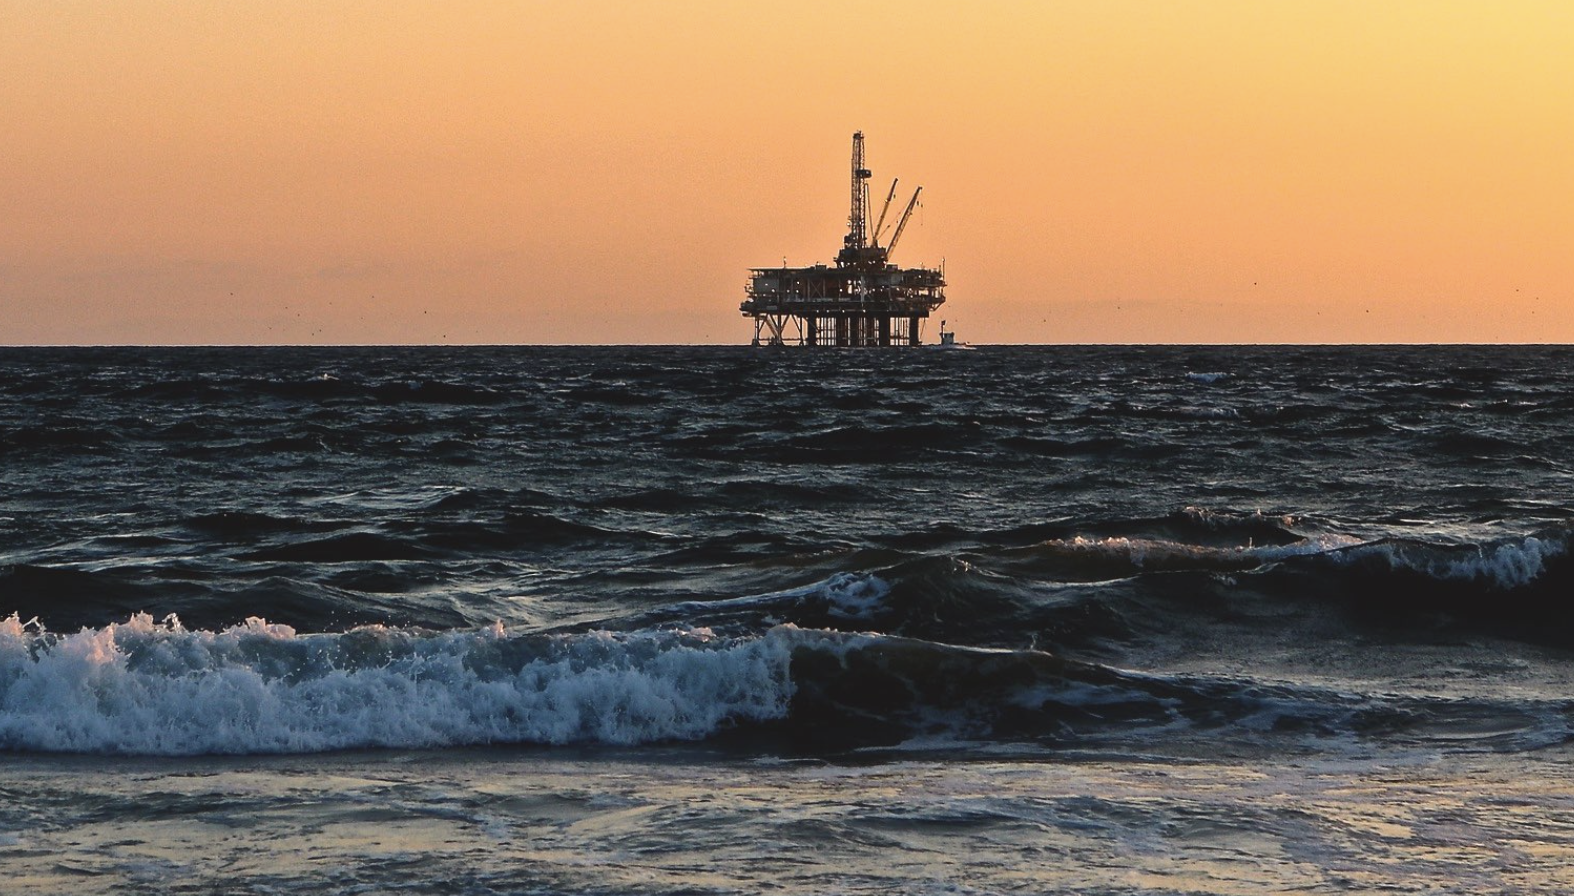 Oil Rig Waves